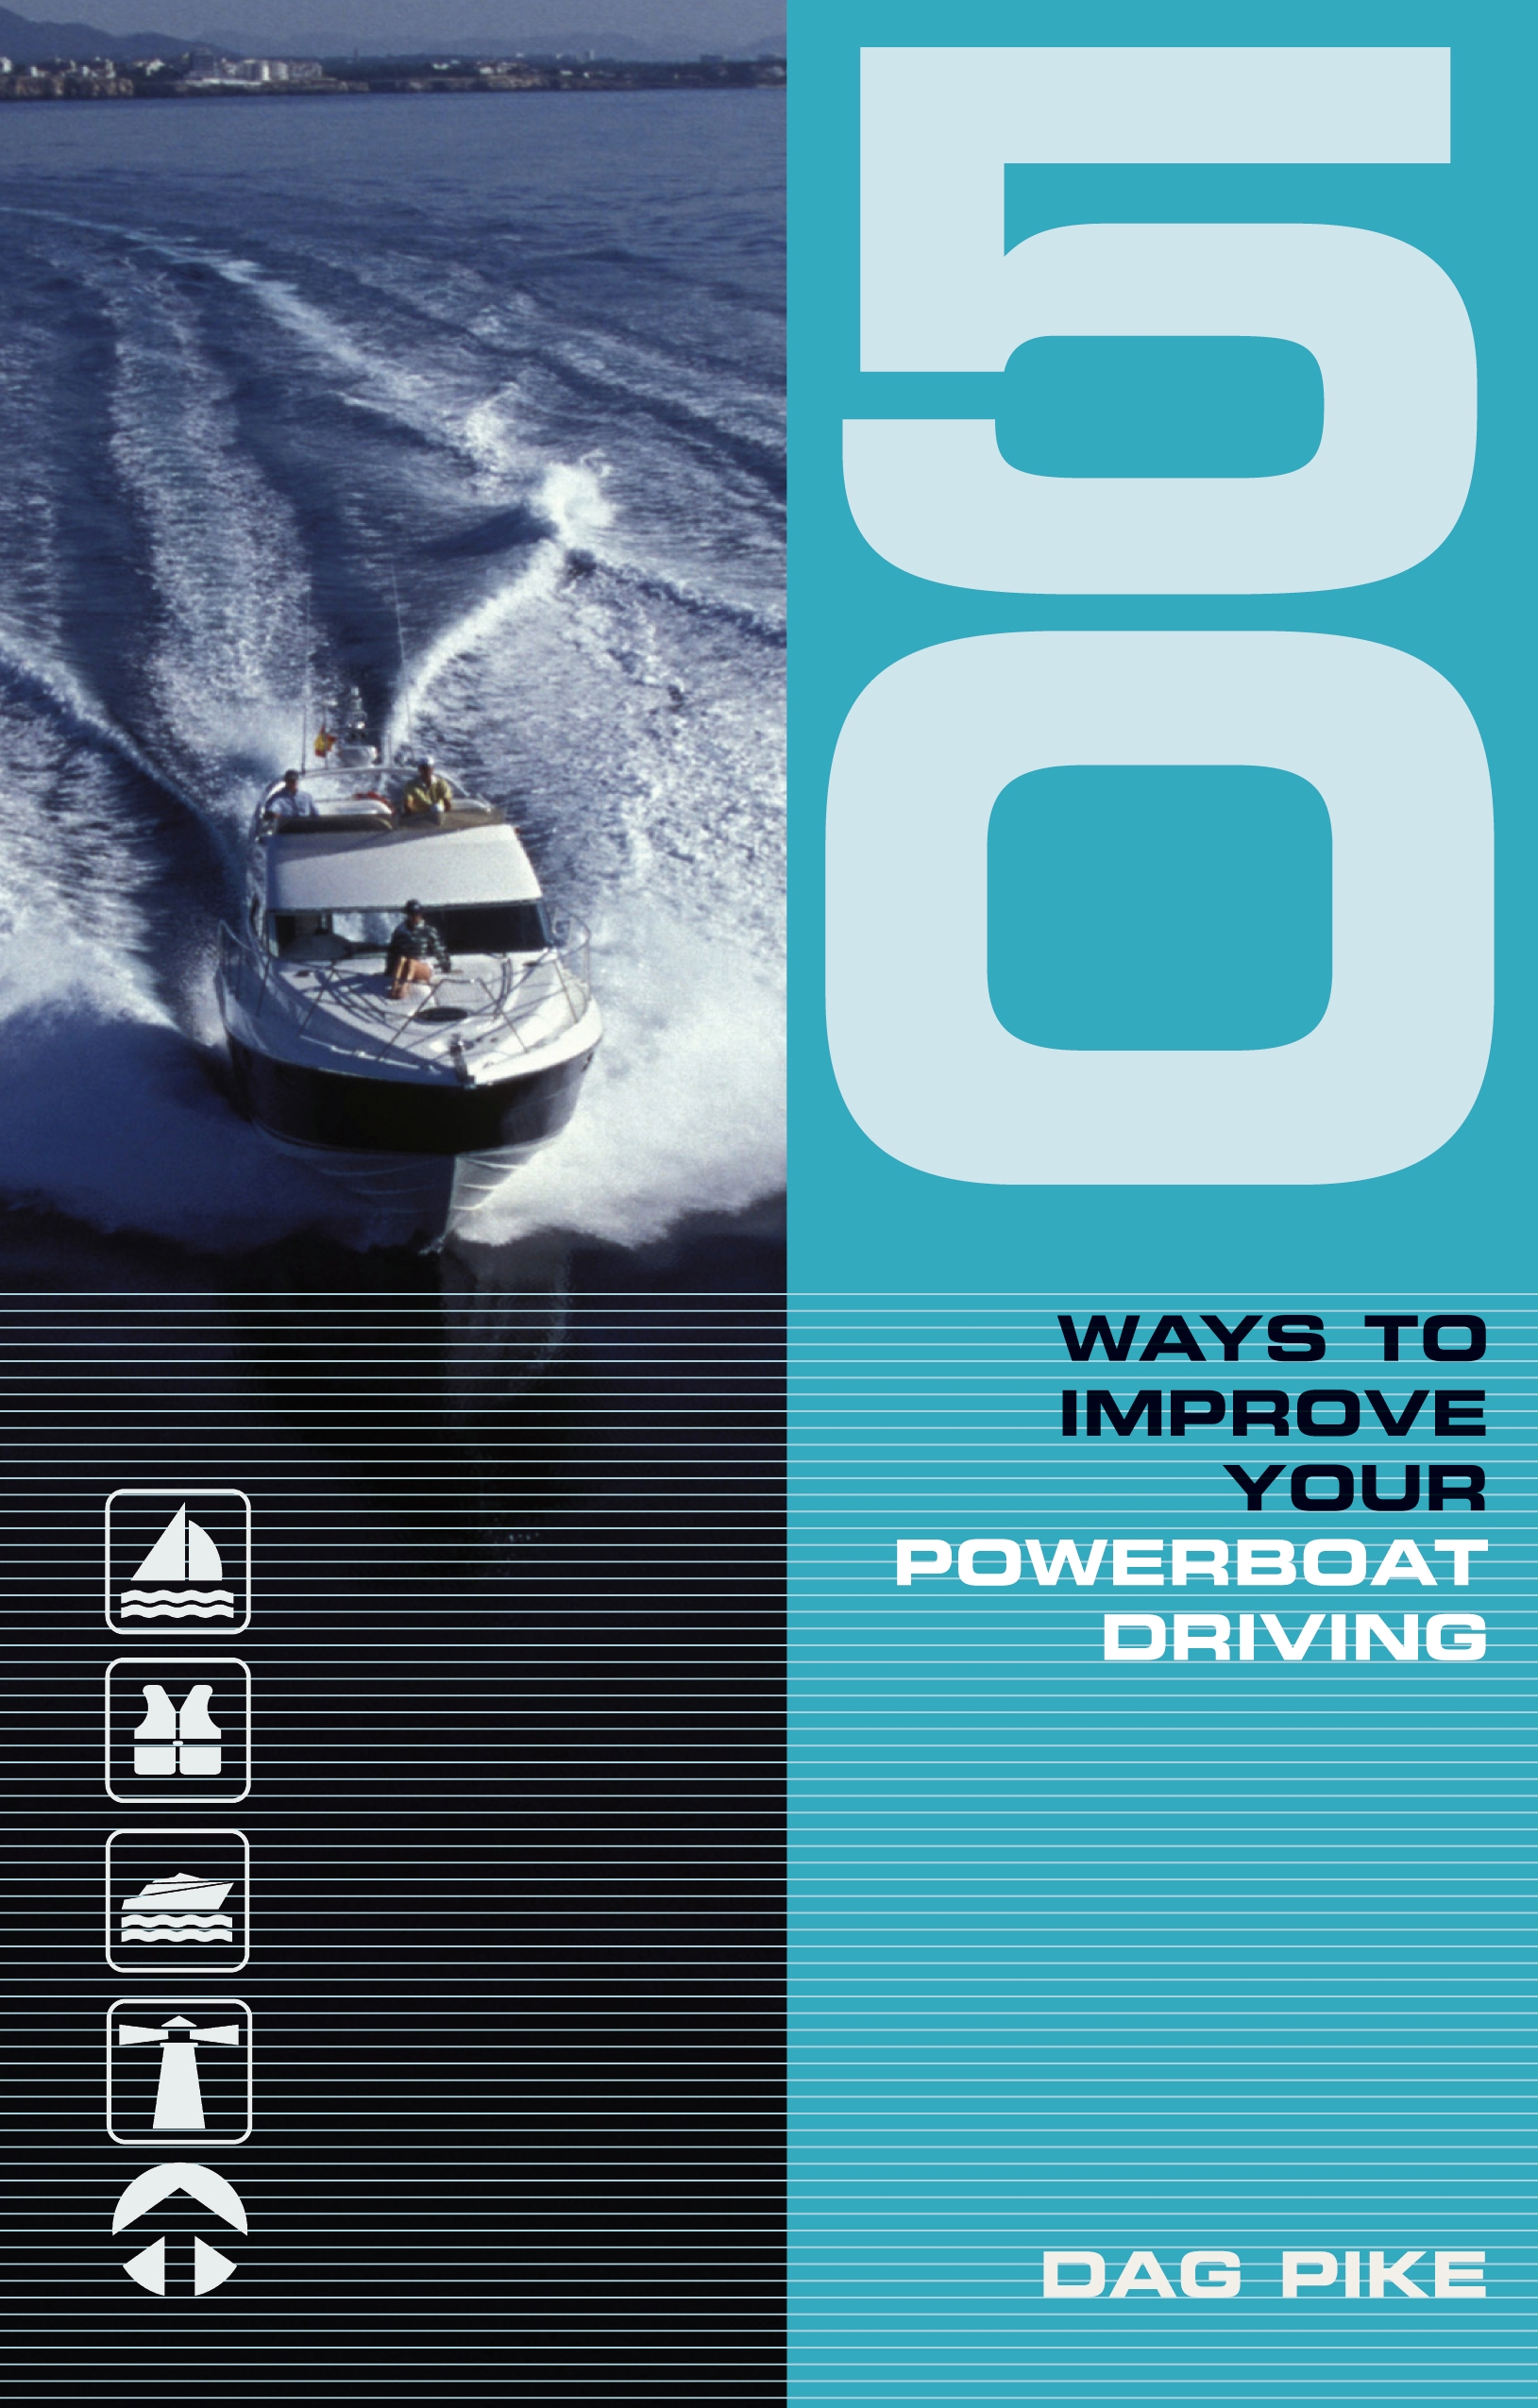 50 Ways to Improve Your Powerboat Driving